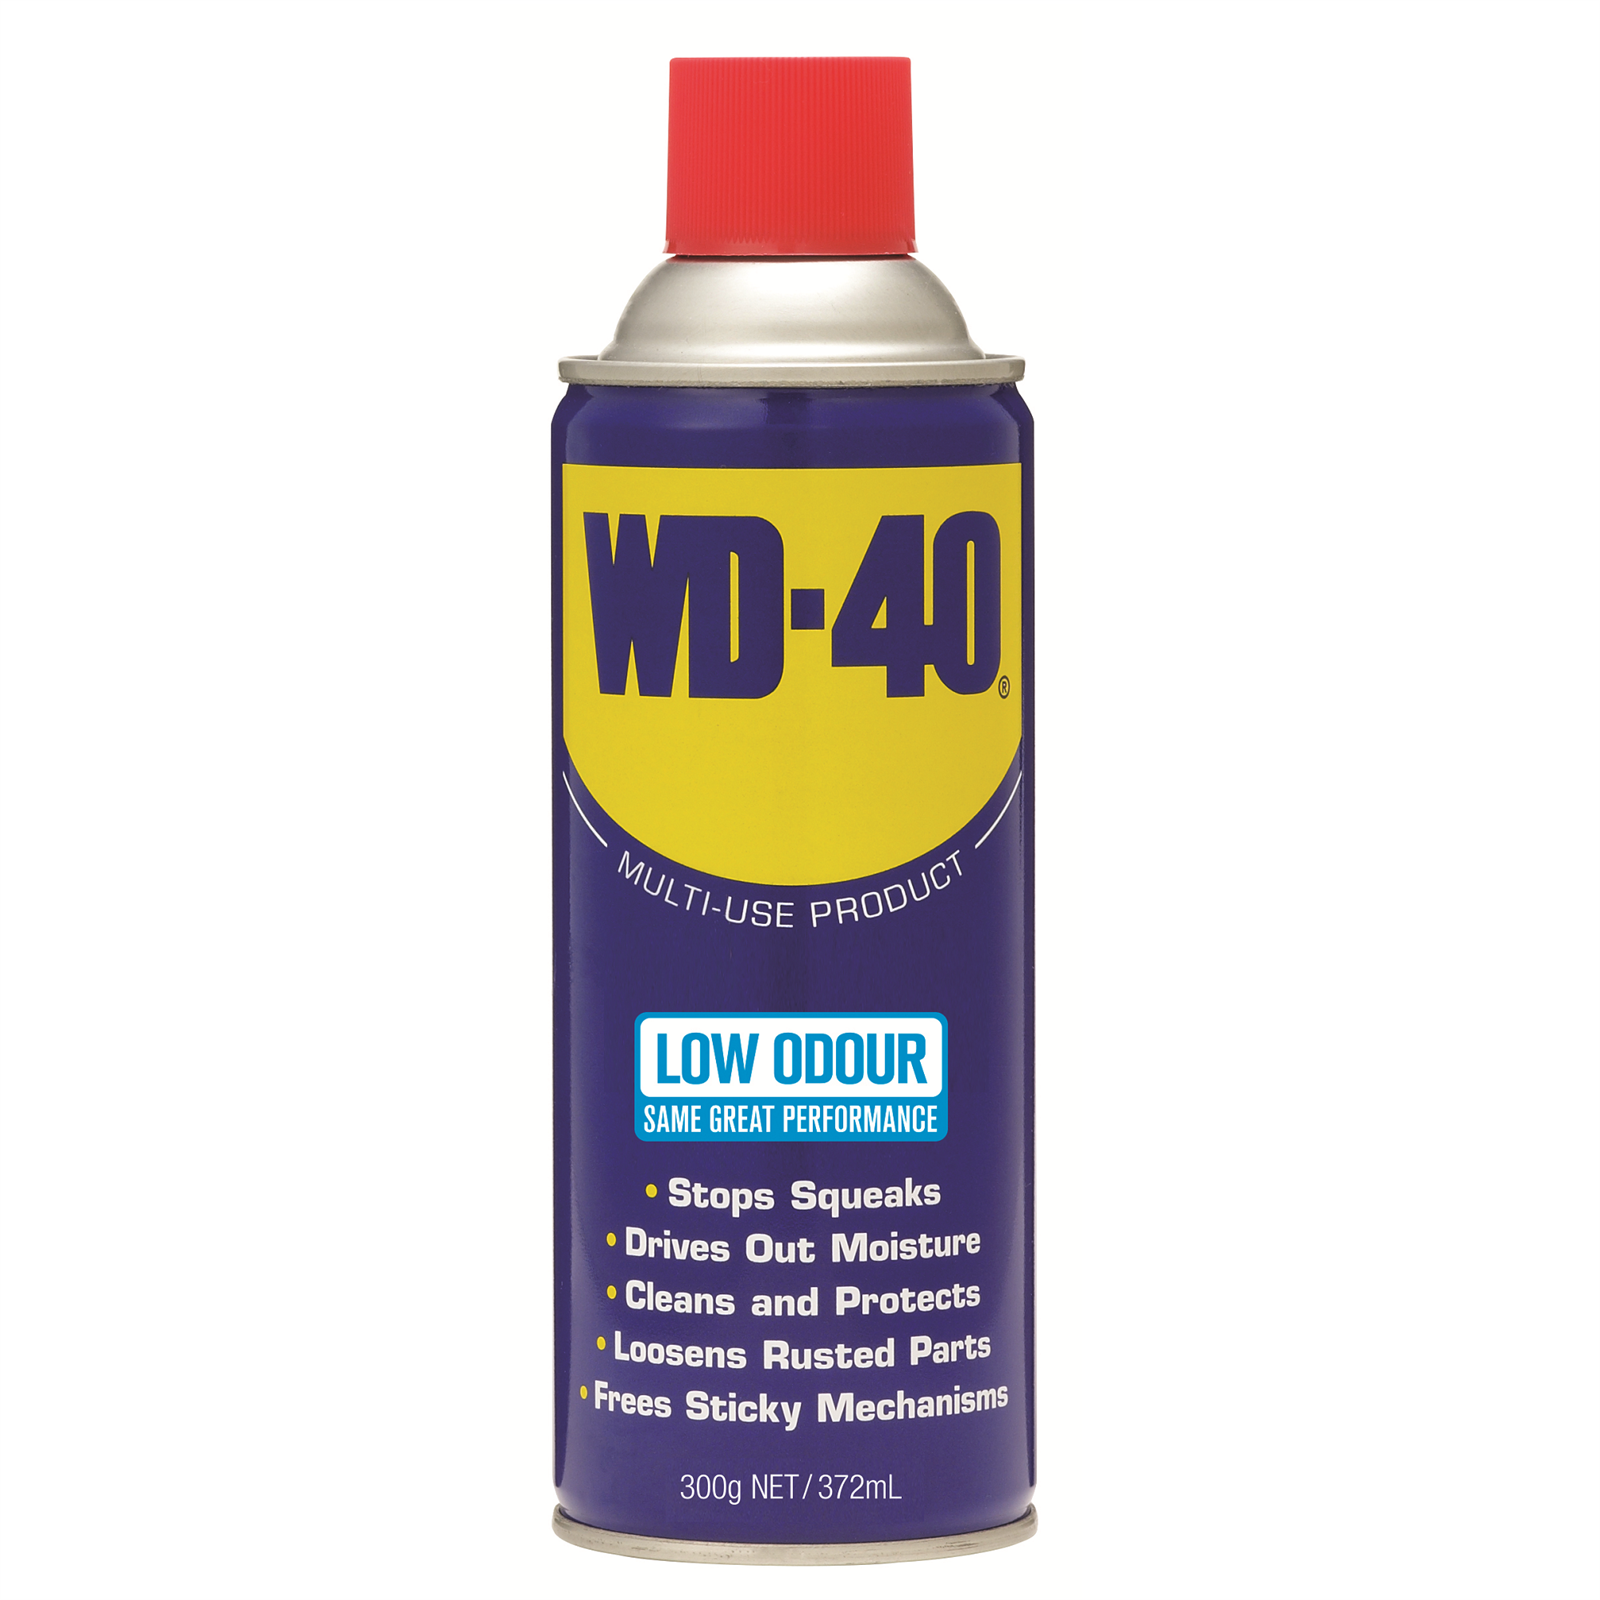 WD-40 300g Low Odour Lubricant